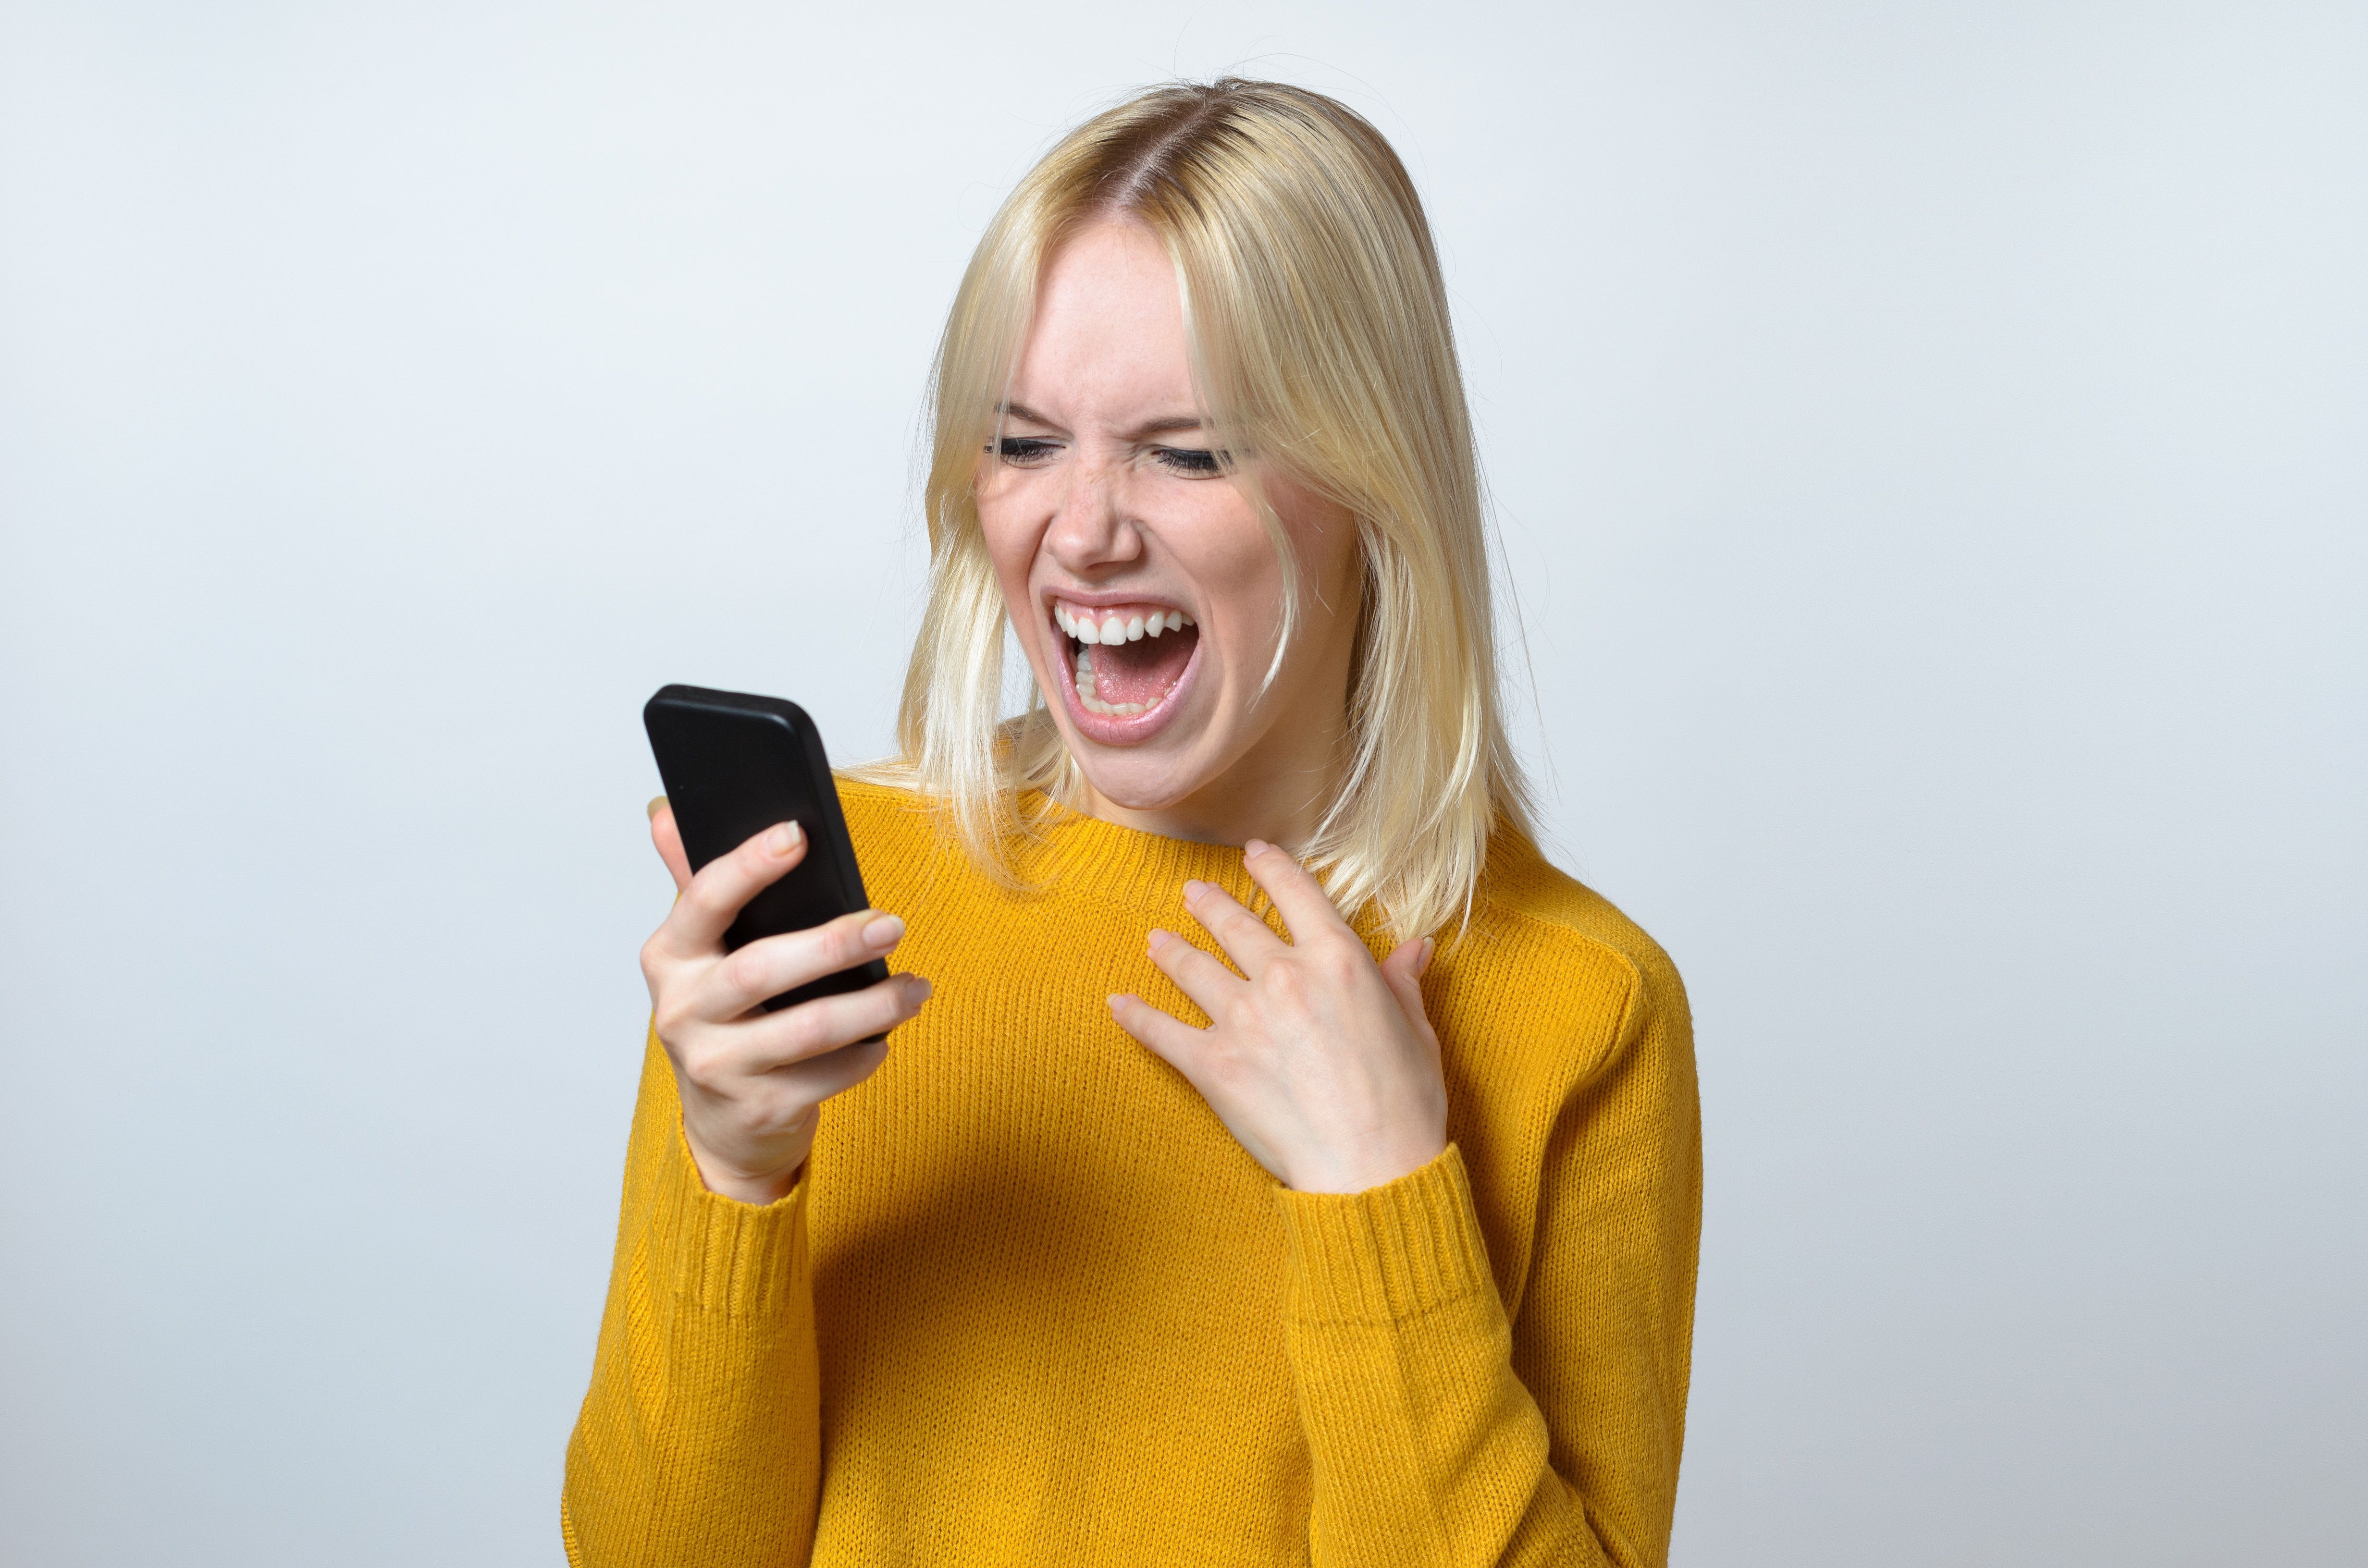 Blond Young Woman Showing Shocked Expression While Looking at her Mobile Phone Against White Background.